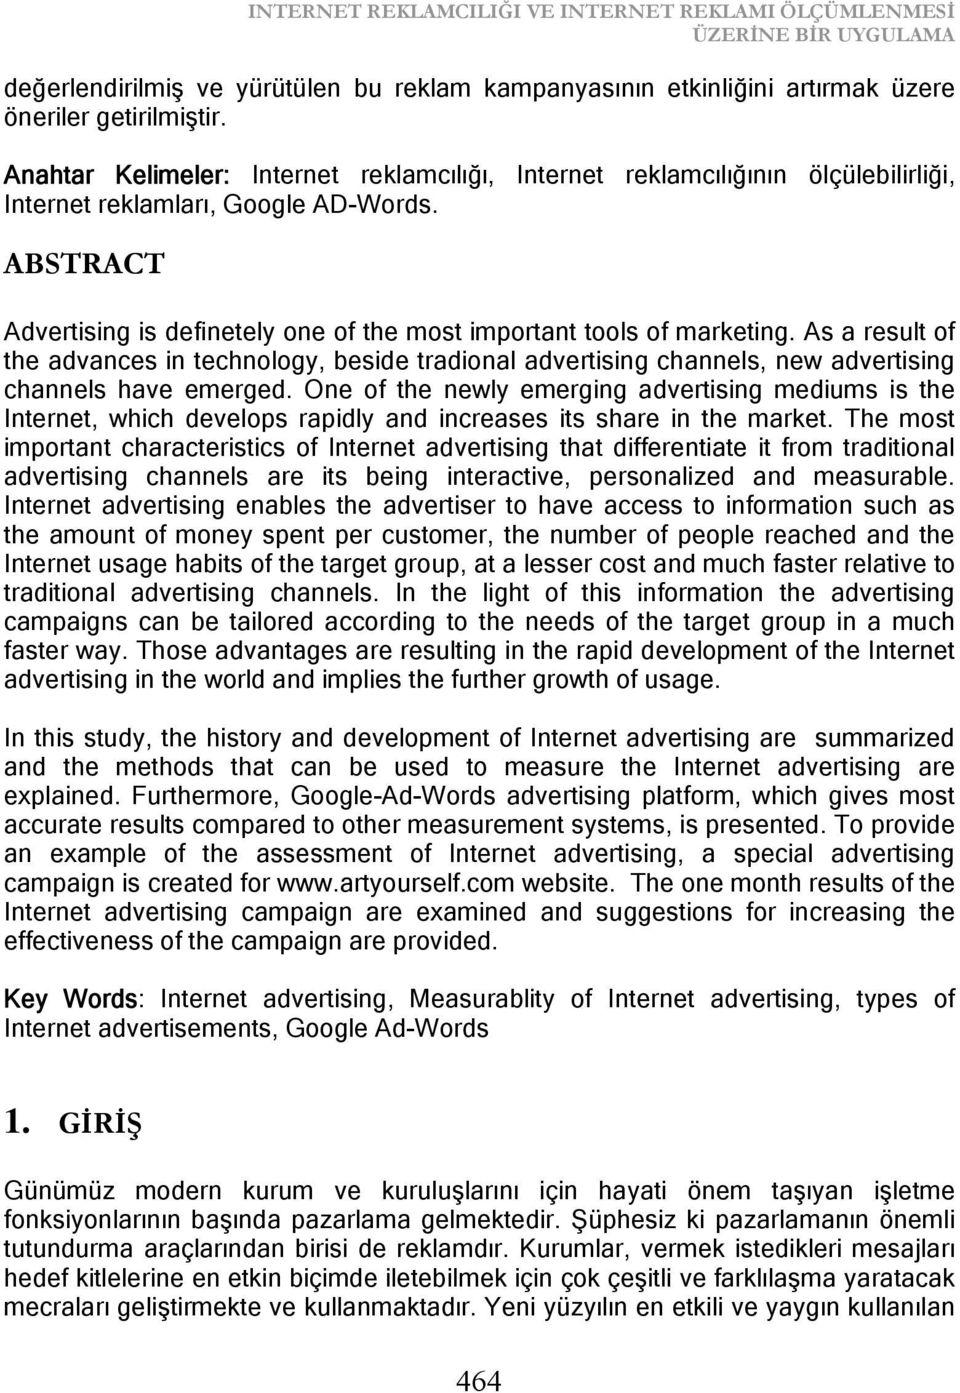 ABSTRACT Advertising is definetely one of the most important tools of marketing.